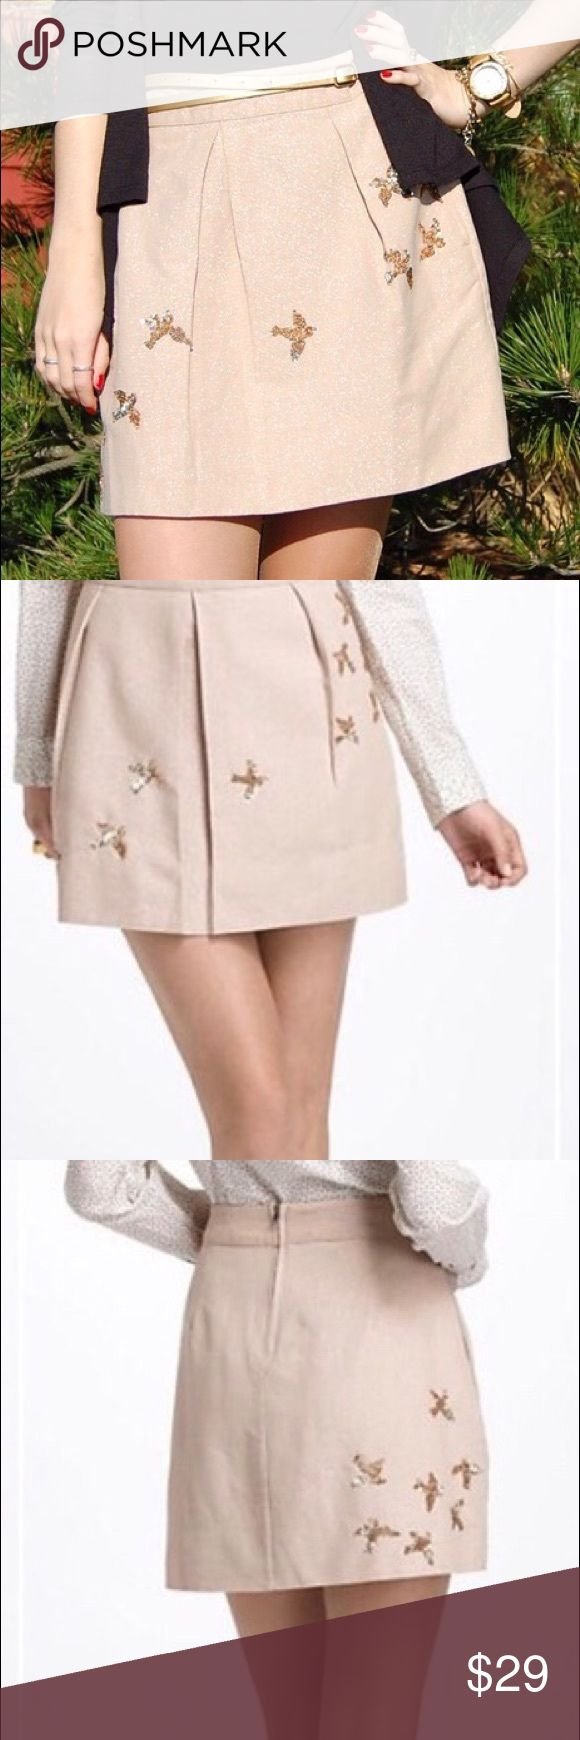 """Leifnotes 'Migration' Sequin Birds Twill Skirt Leifnotes Migration Skirt. Pale pink/beige shimmer twill with gold sequined birds in flight. Hip pockets. Lined. Soft pleats. Very pretty.  Minimal, gentle use. No holes or repairs. Clean! We note a minor defect: 2 tiny white spot (1/4"""" and 1/8"""") hidden in a pleat. Very minor and hard to see. Questions welcome. Anthropologie Skirts Mini"""